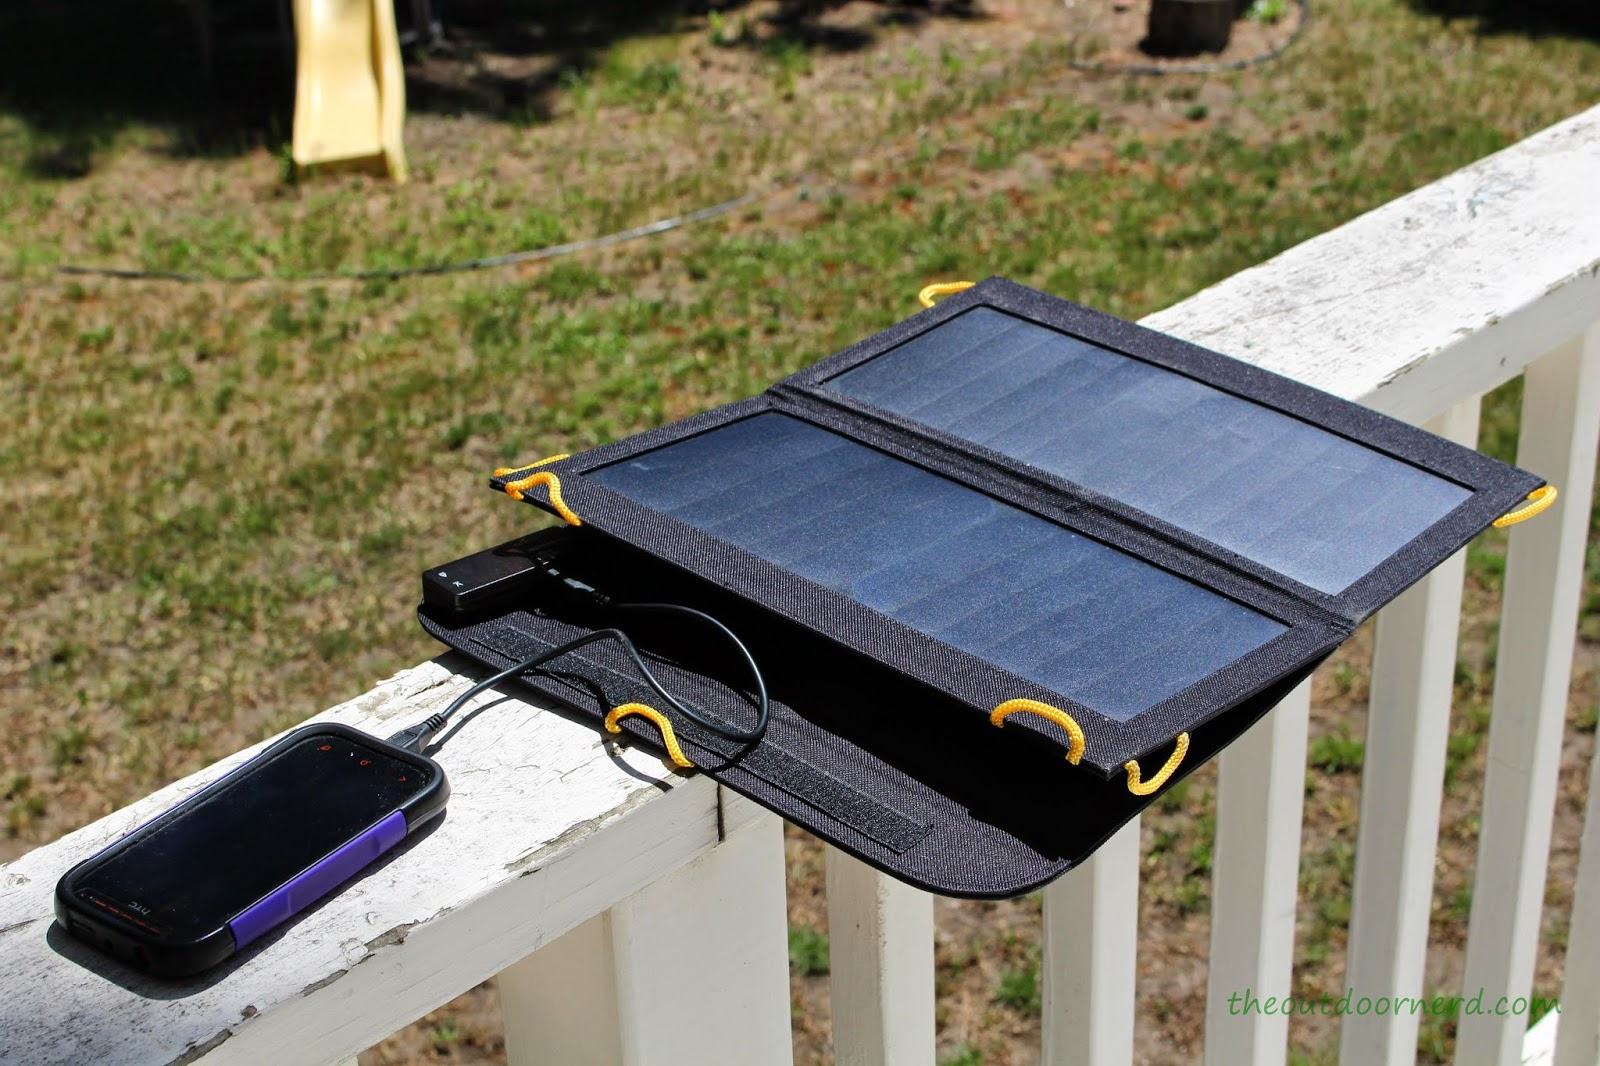 Levin Sol-Wing 13W Solar USB Charger: Charging a Phone on the Deck